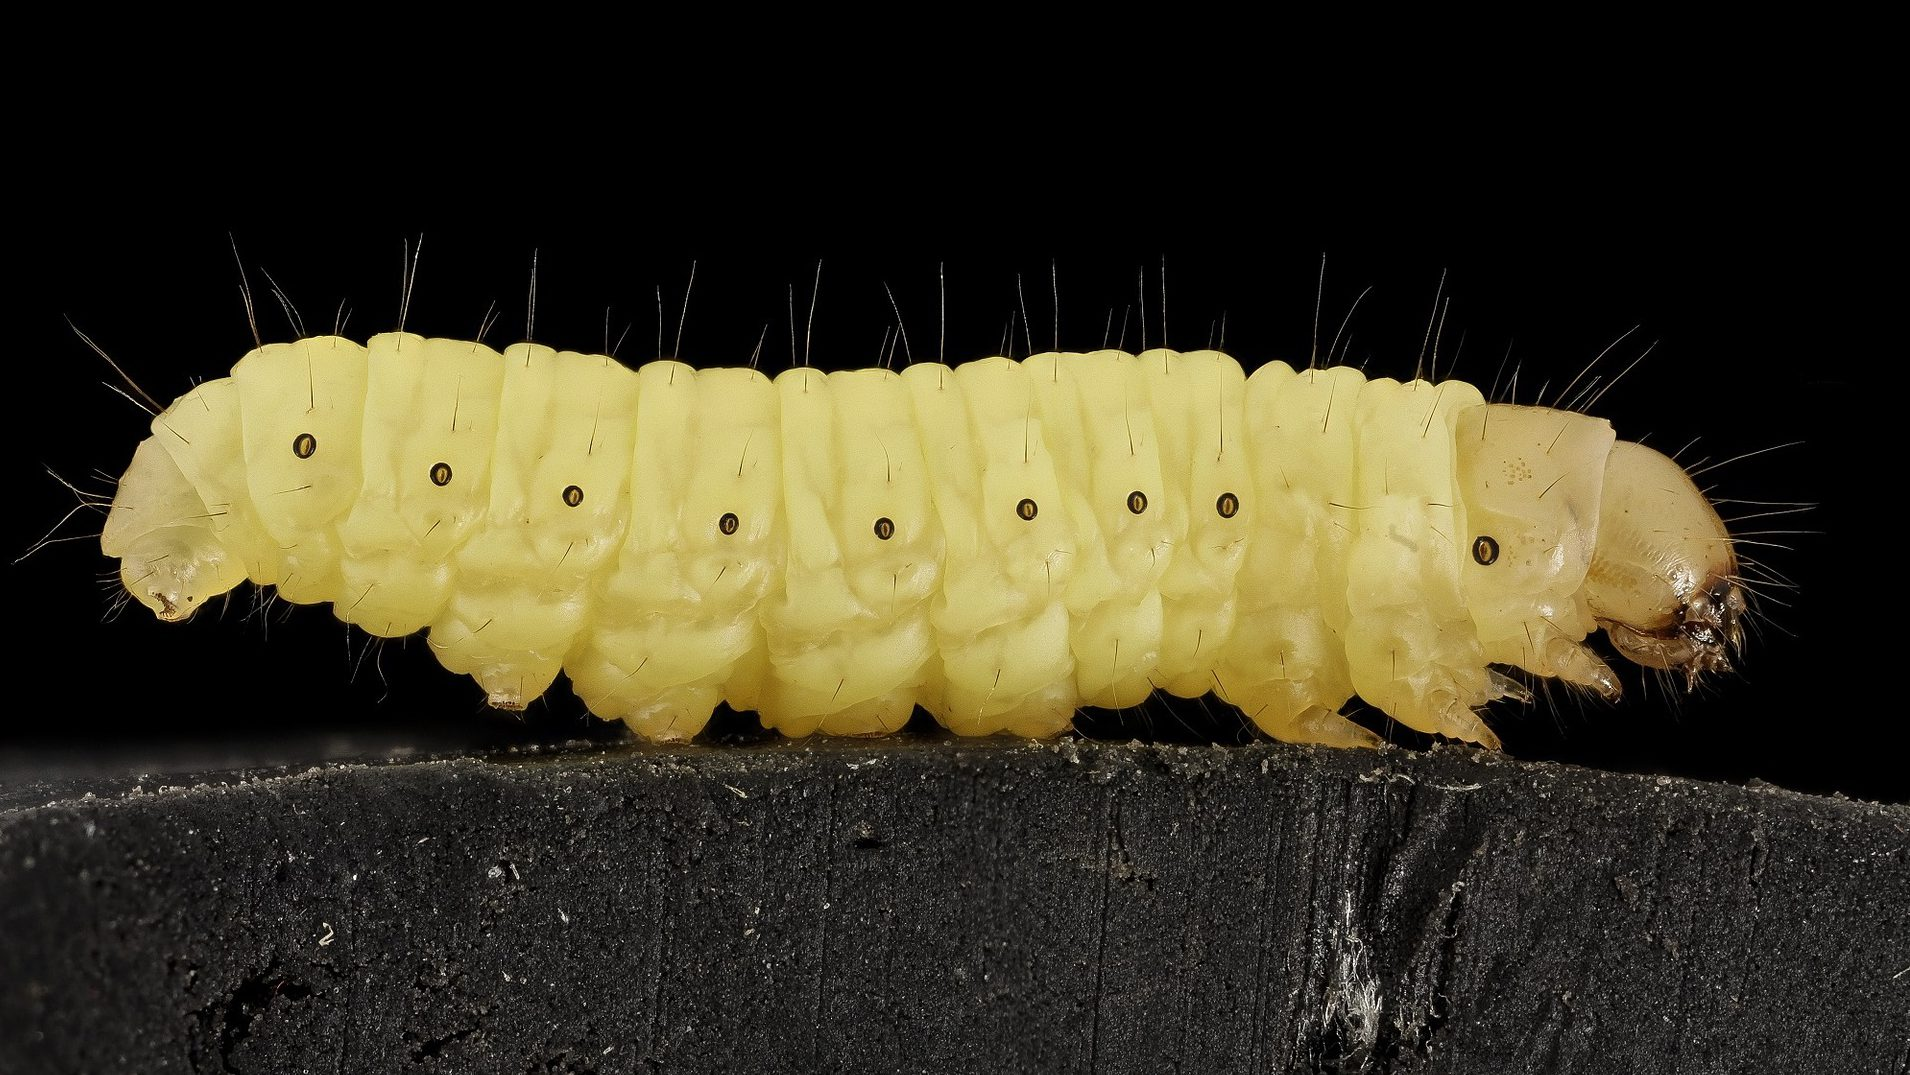 Image of a wax worm